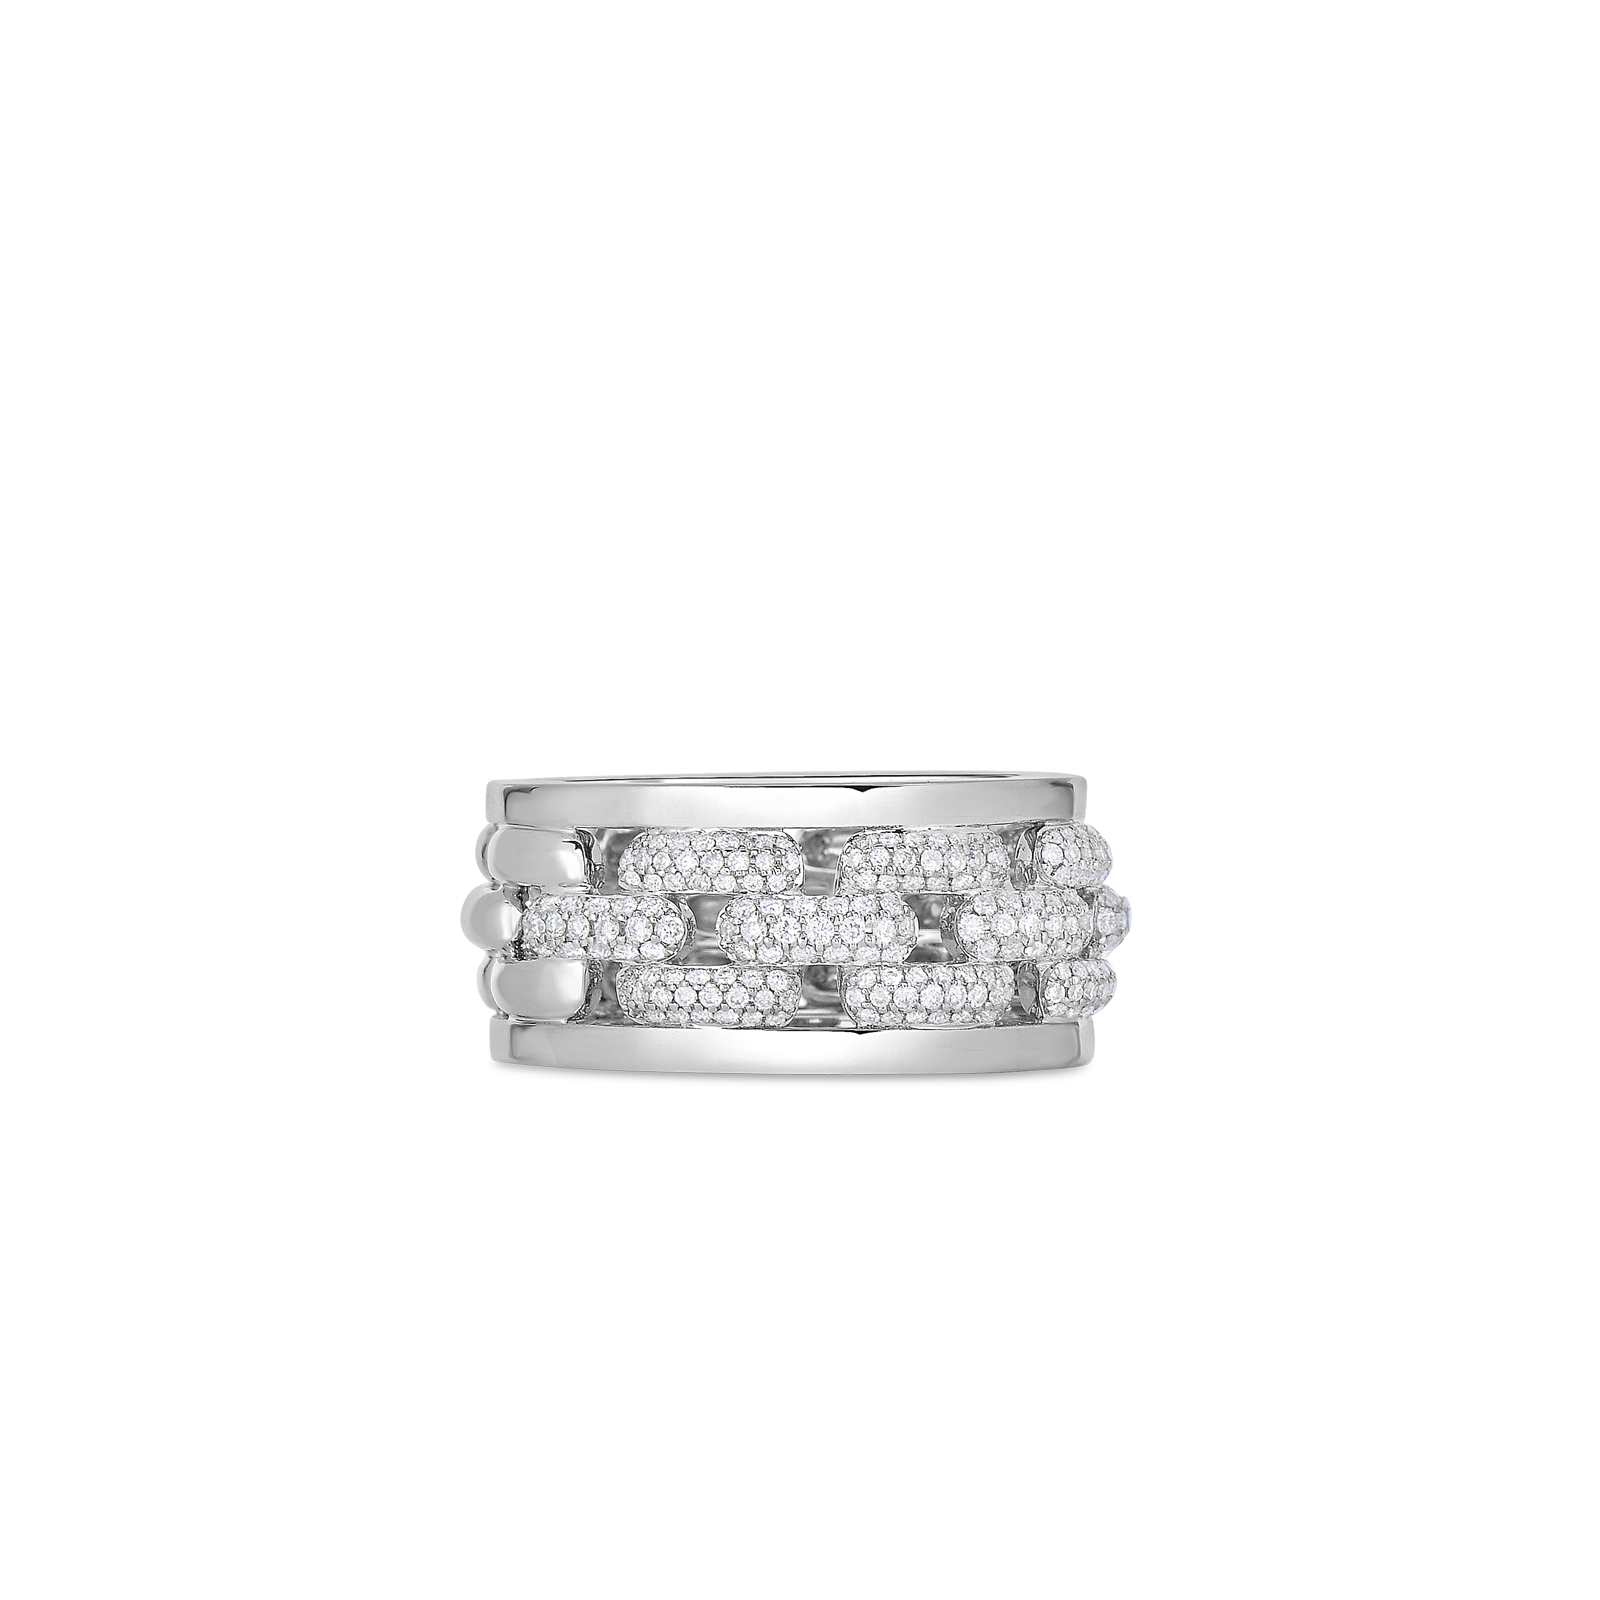 Roberto-Coin-Classic-Diamond-18K-White-Gold-Ring-with-Diamonds